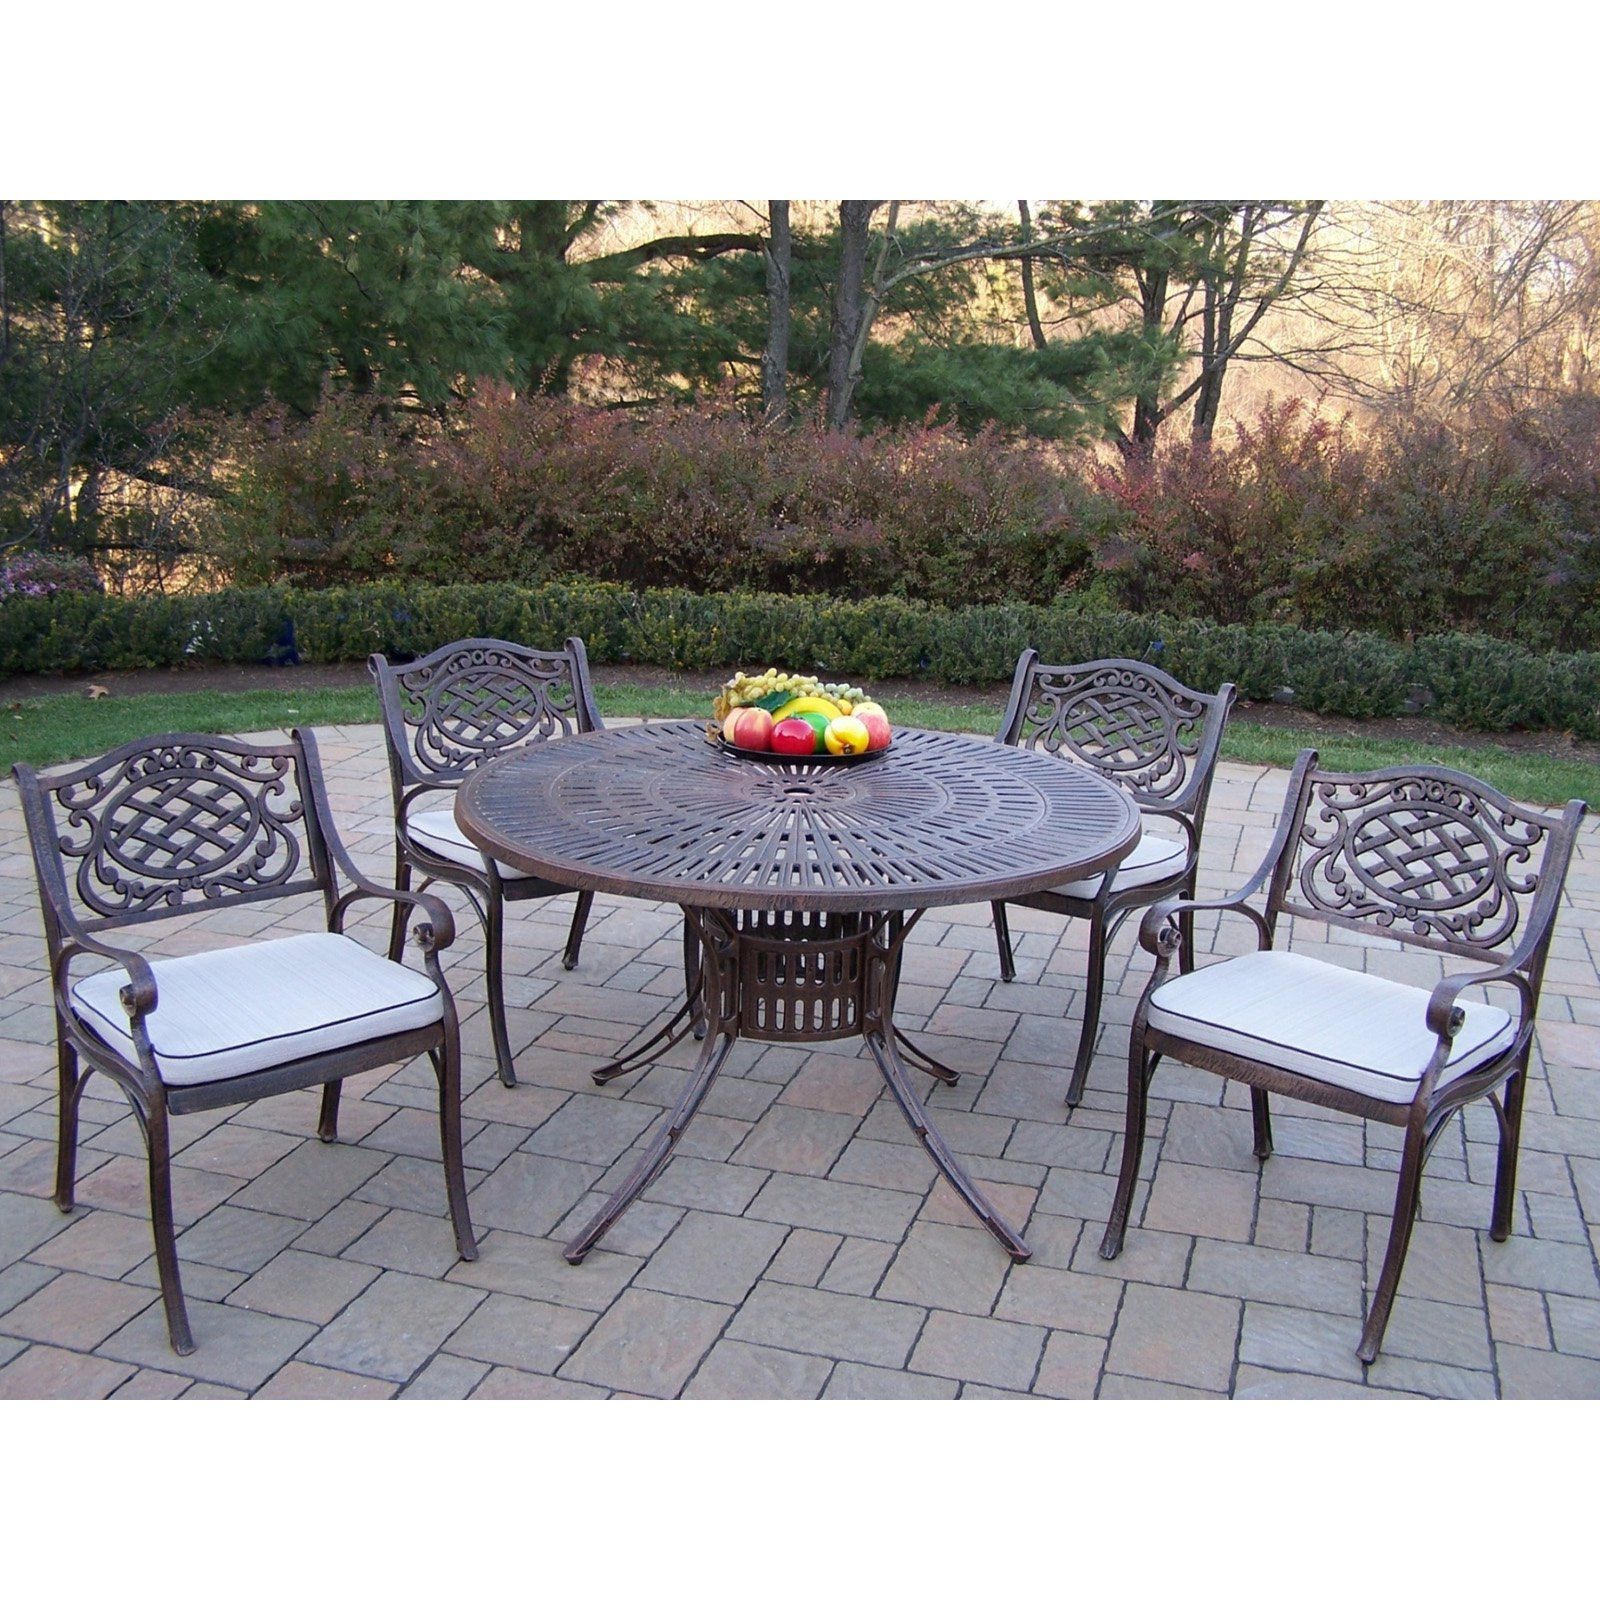 f355d78f5ea Outdoor Oakland Living Sunray 48 in. Mississippi Patio Dining Set - Seats 4